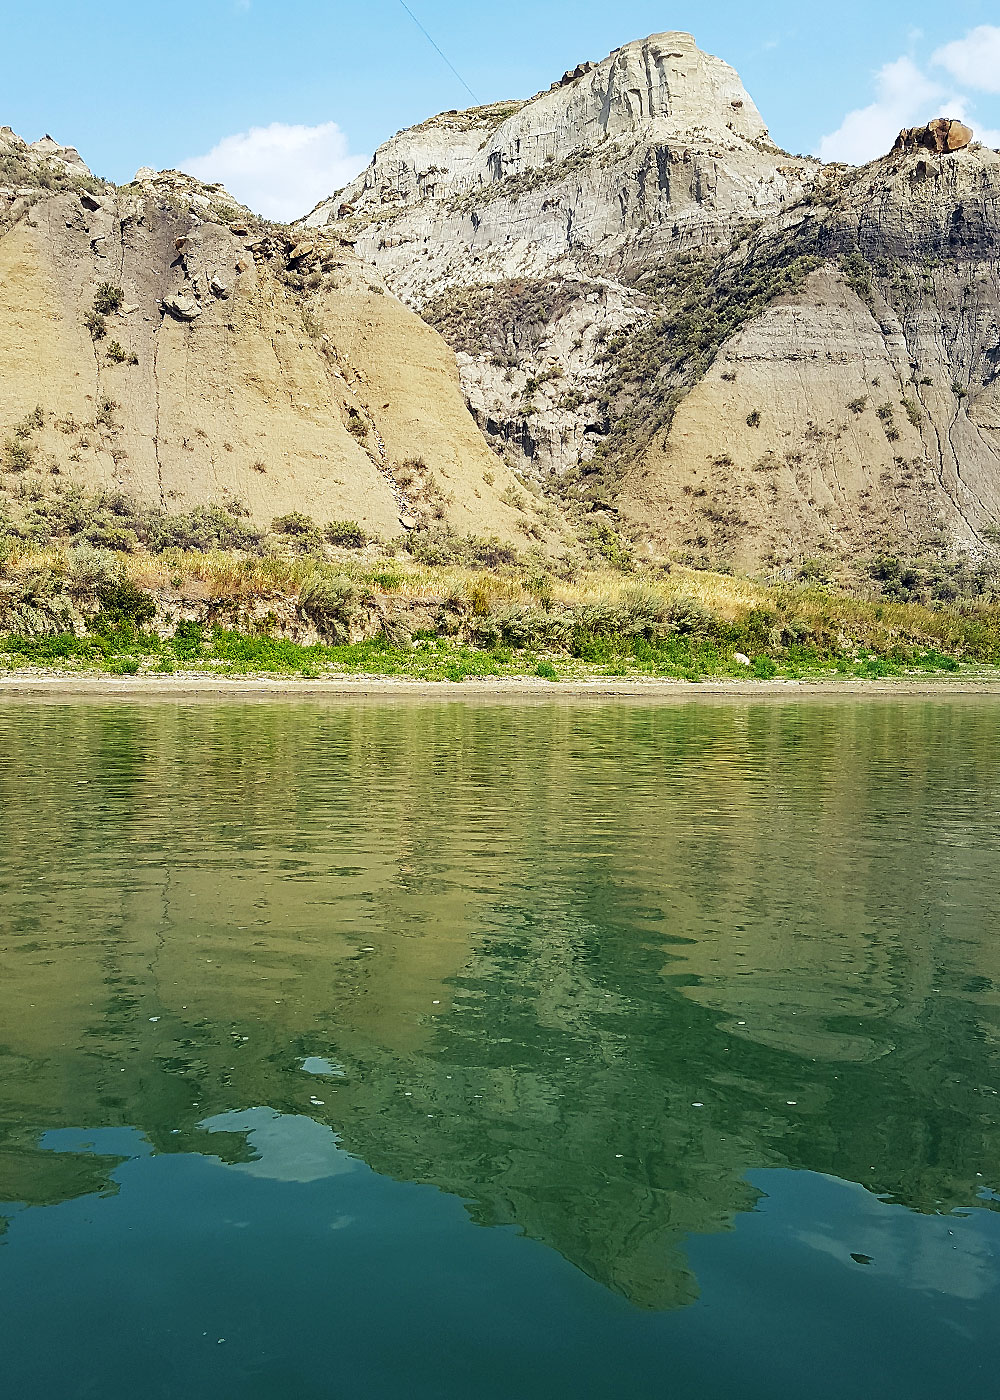 Valley walls around South Saskatchewan River